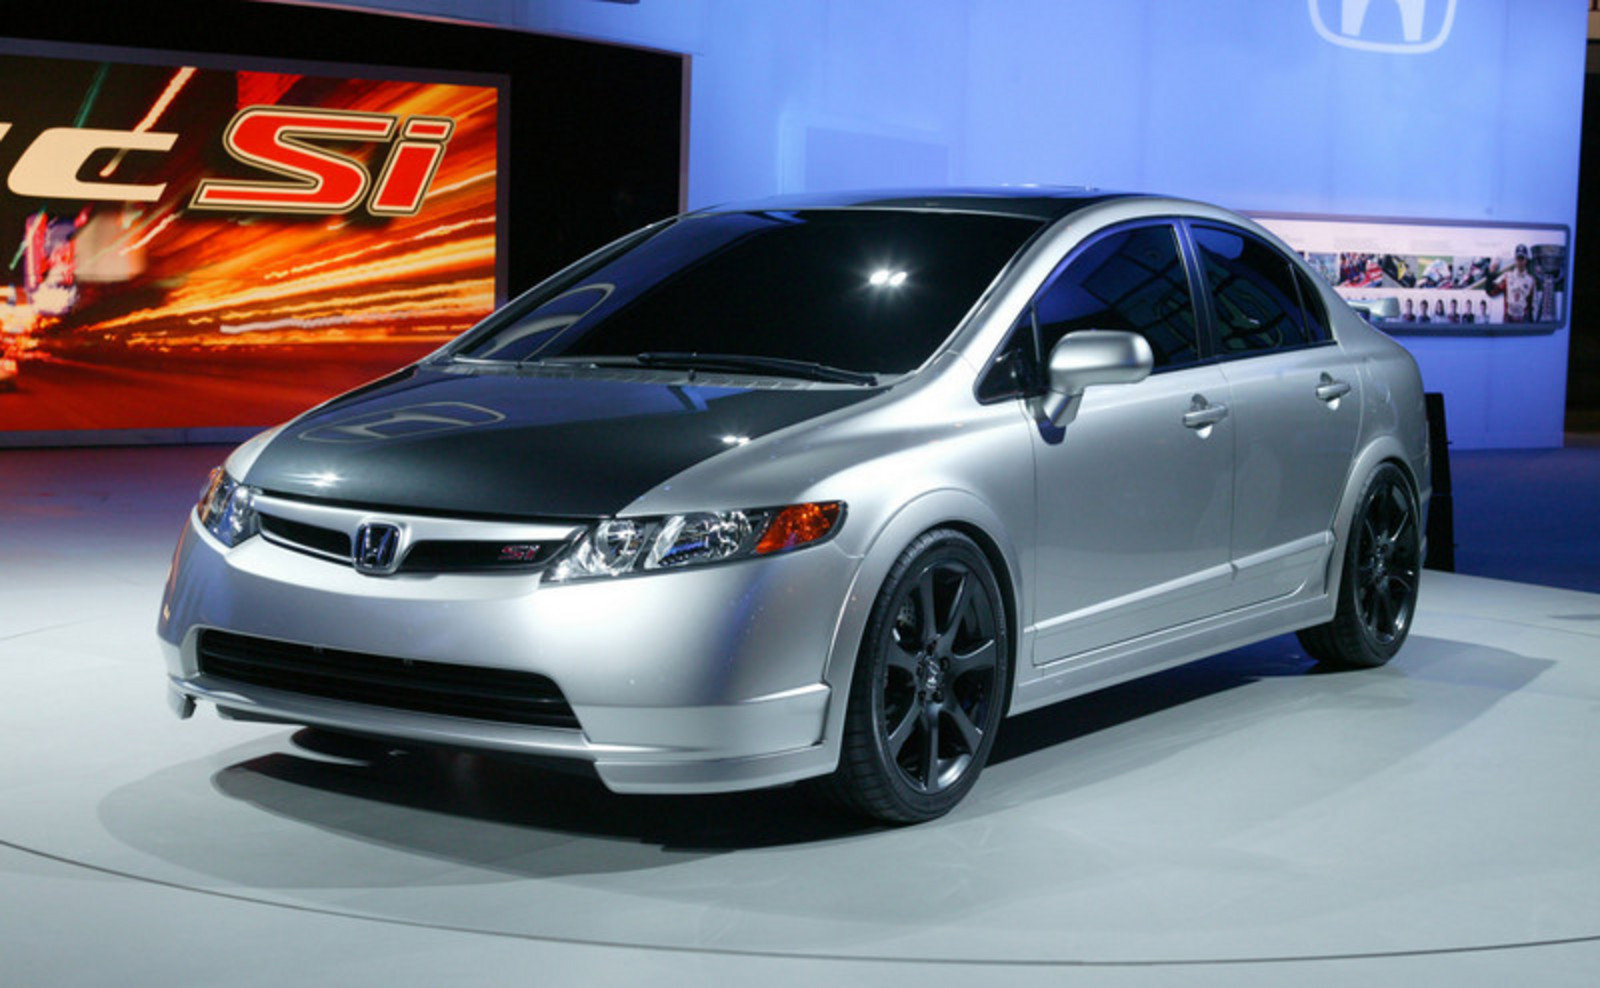 2007 honda civic si picture 40130 car review top speed. Black Bedroom Furniture Sets. Home Design Ideas